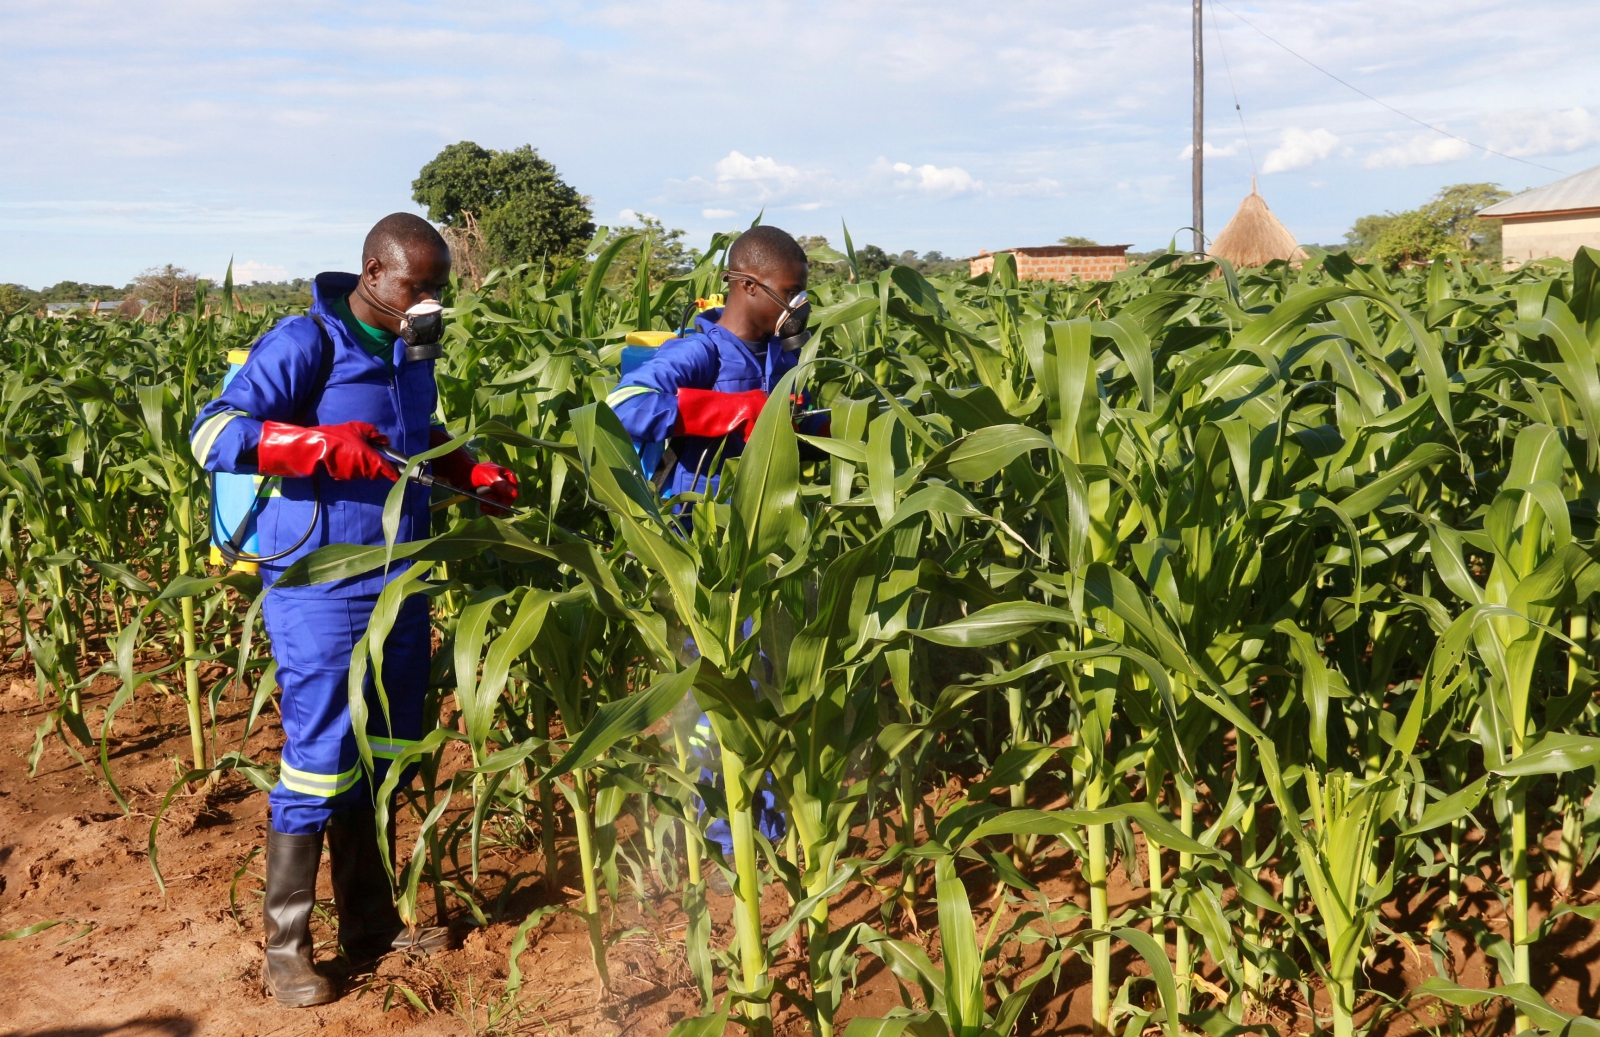 Allien army worm threatens African maize farmers livelihoods